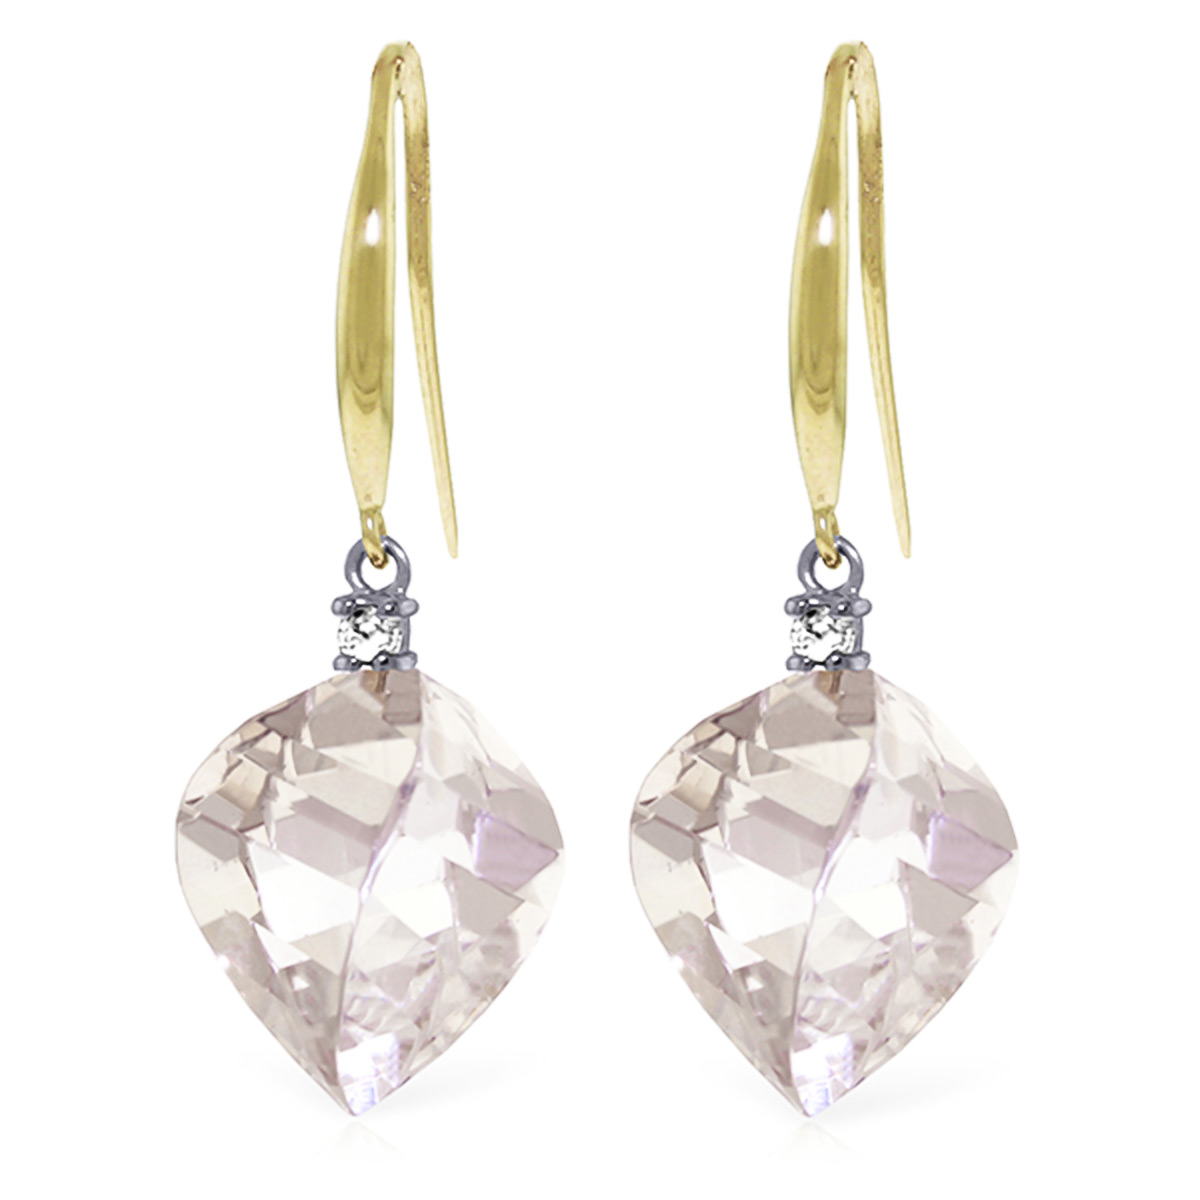 White Topaz Drop Earrings 25.7 ctw in 9ct Gold